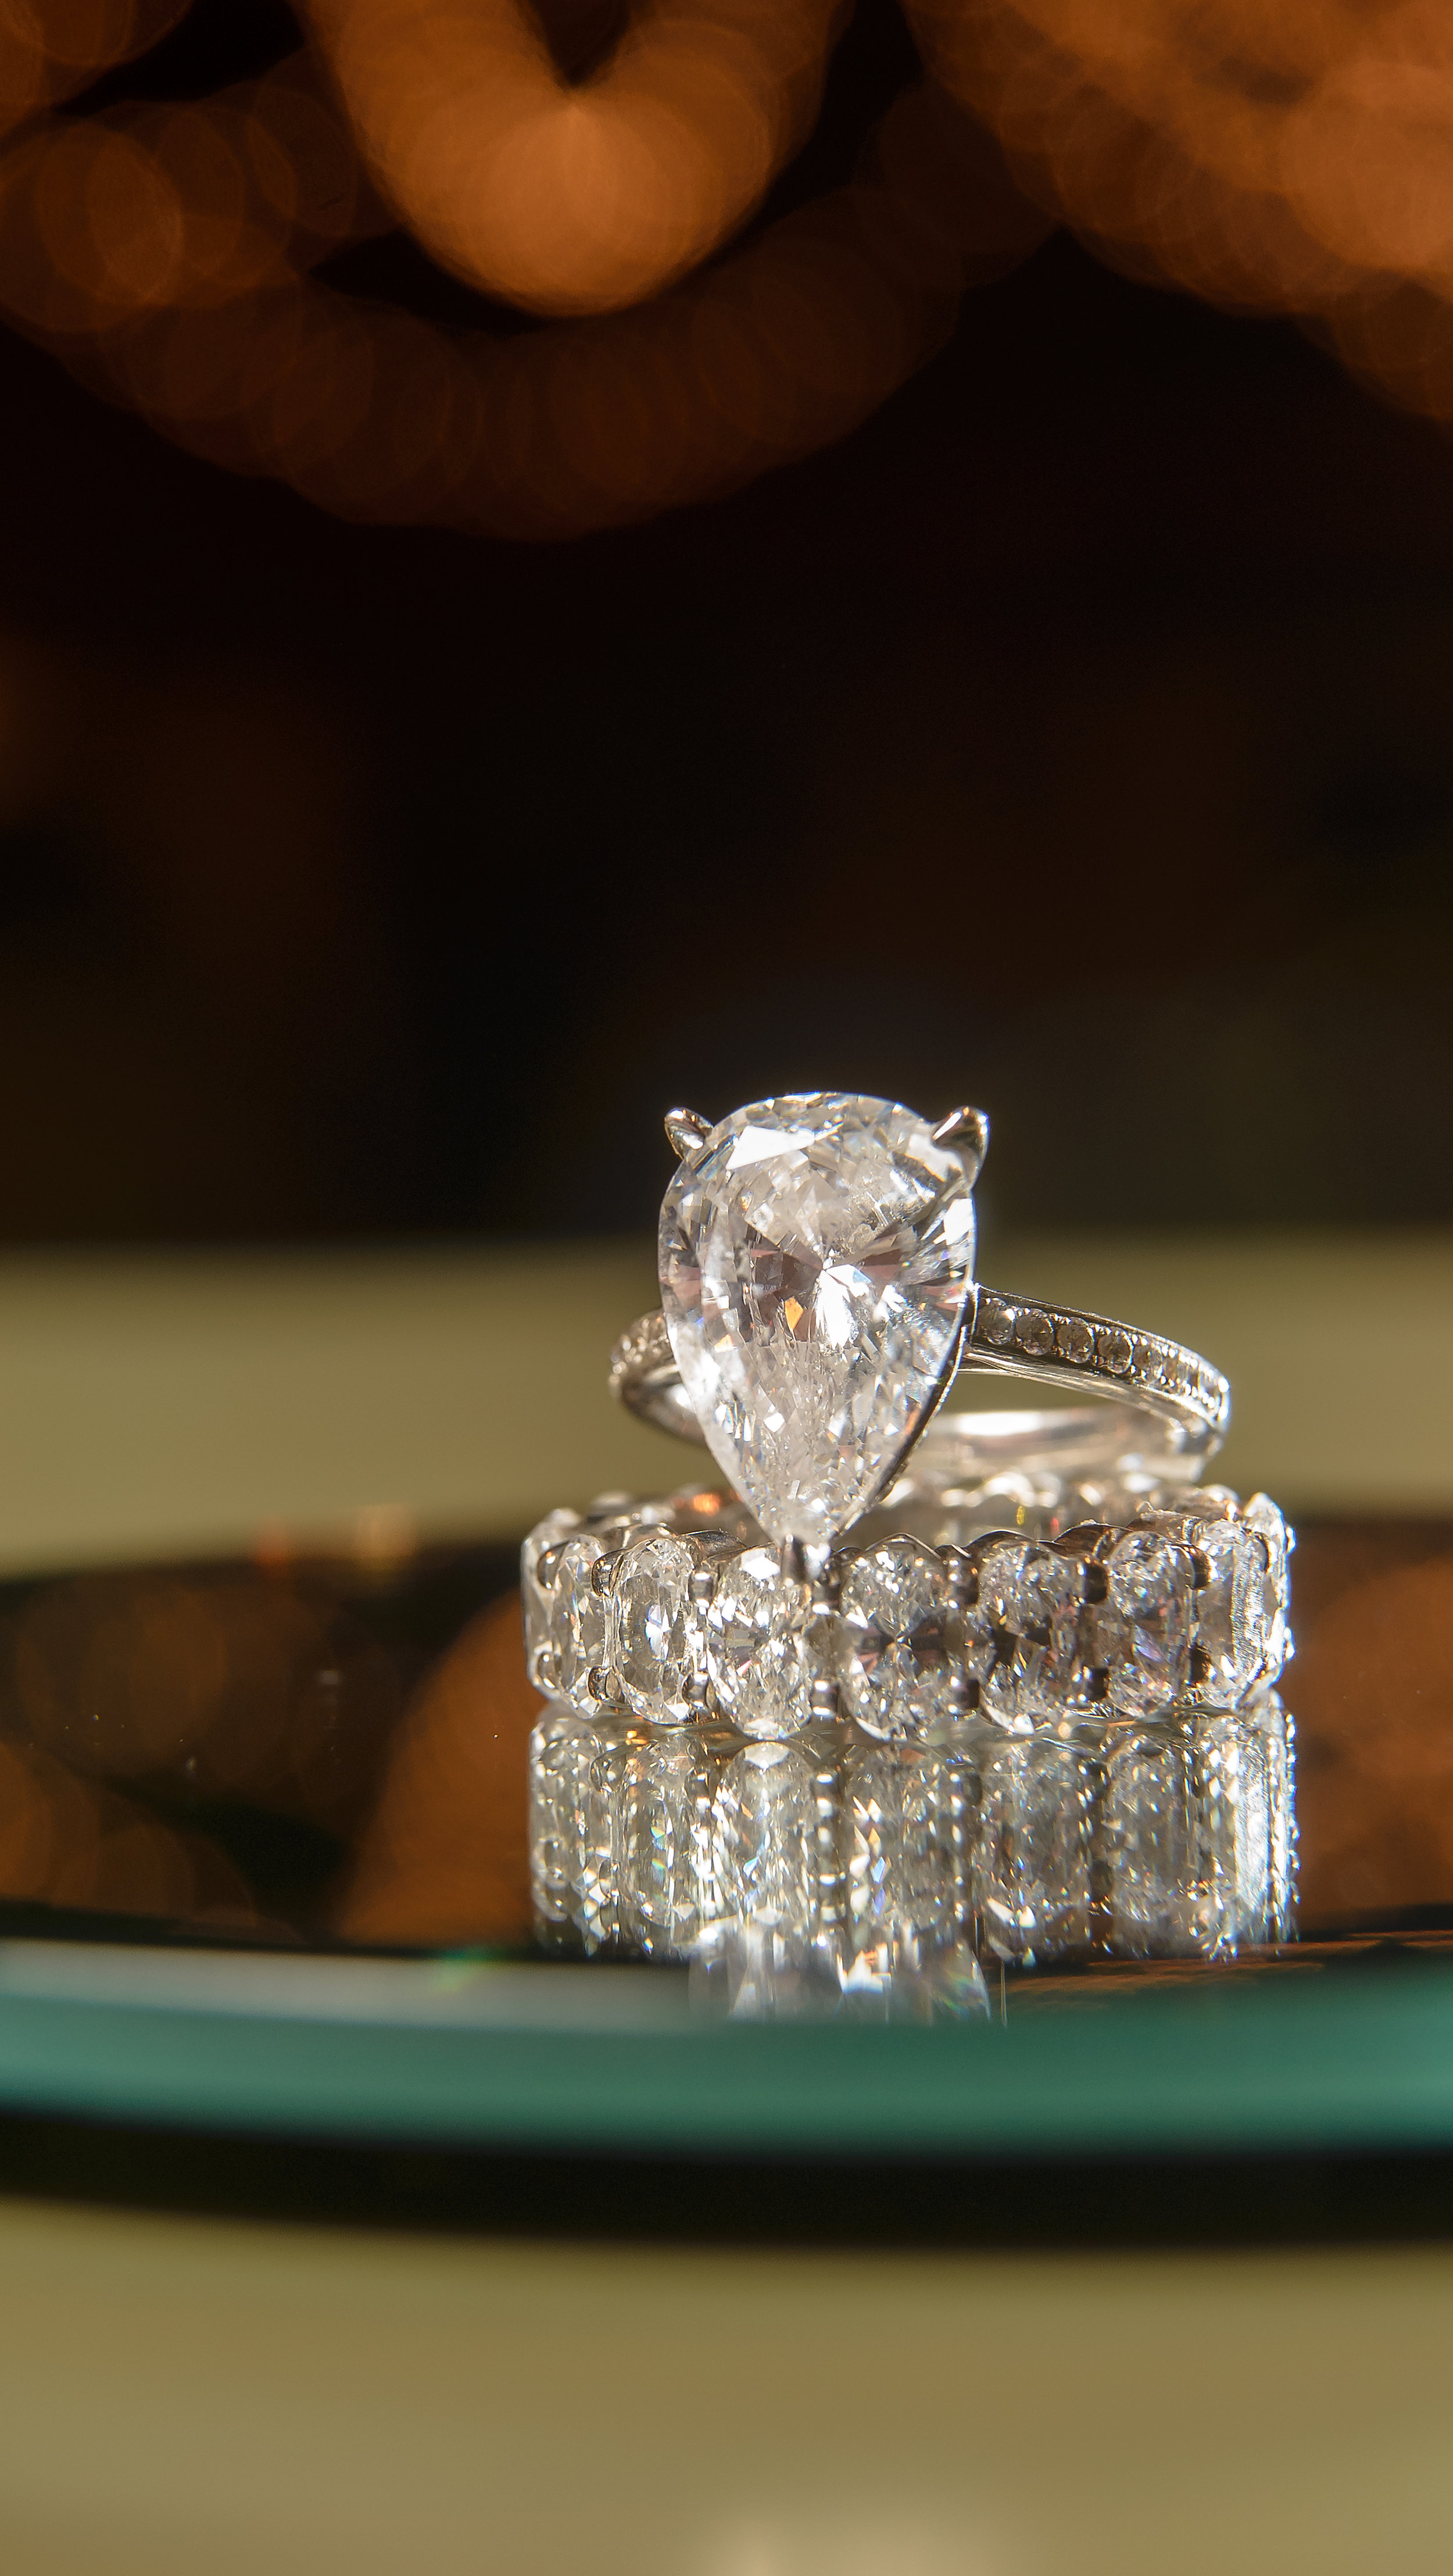 Ring Picture OKC Photographer The Palace Event Center